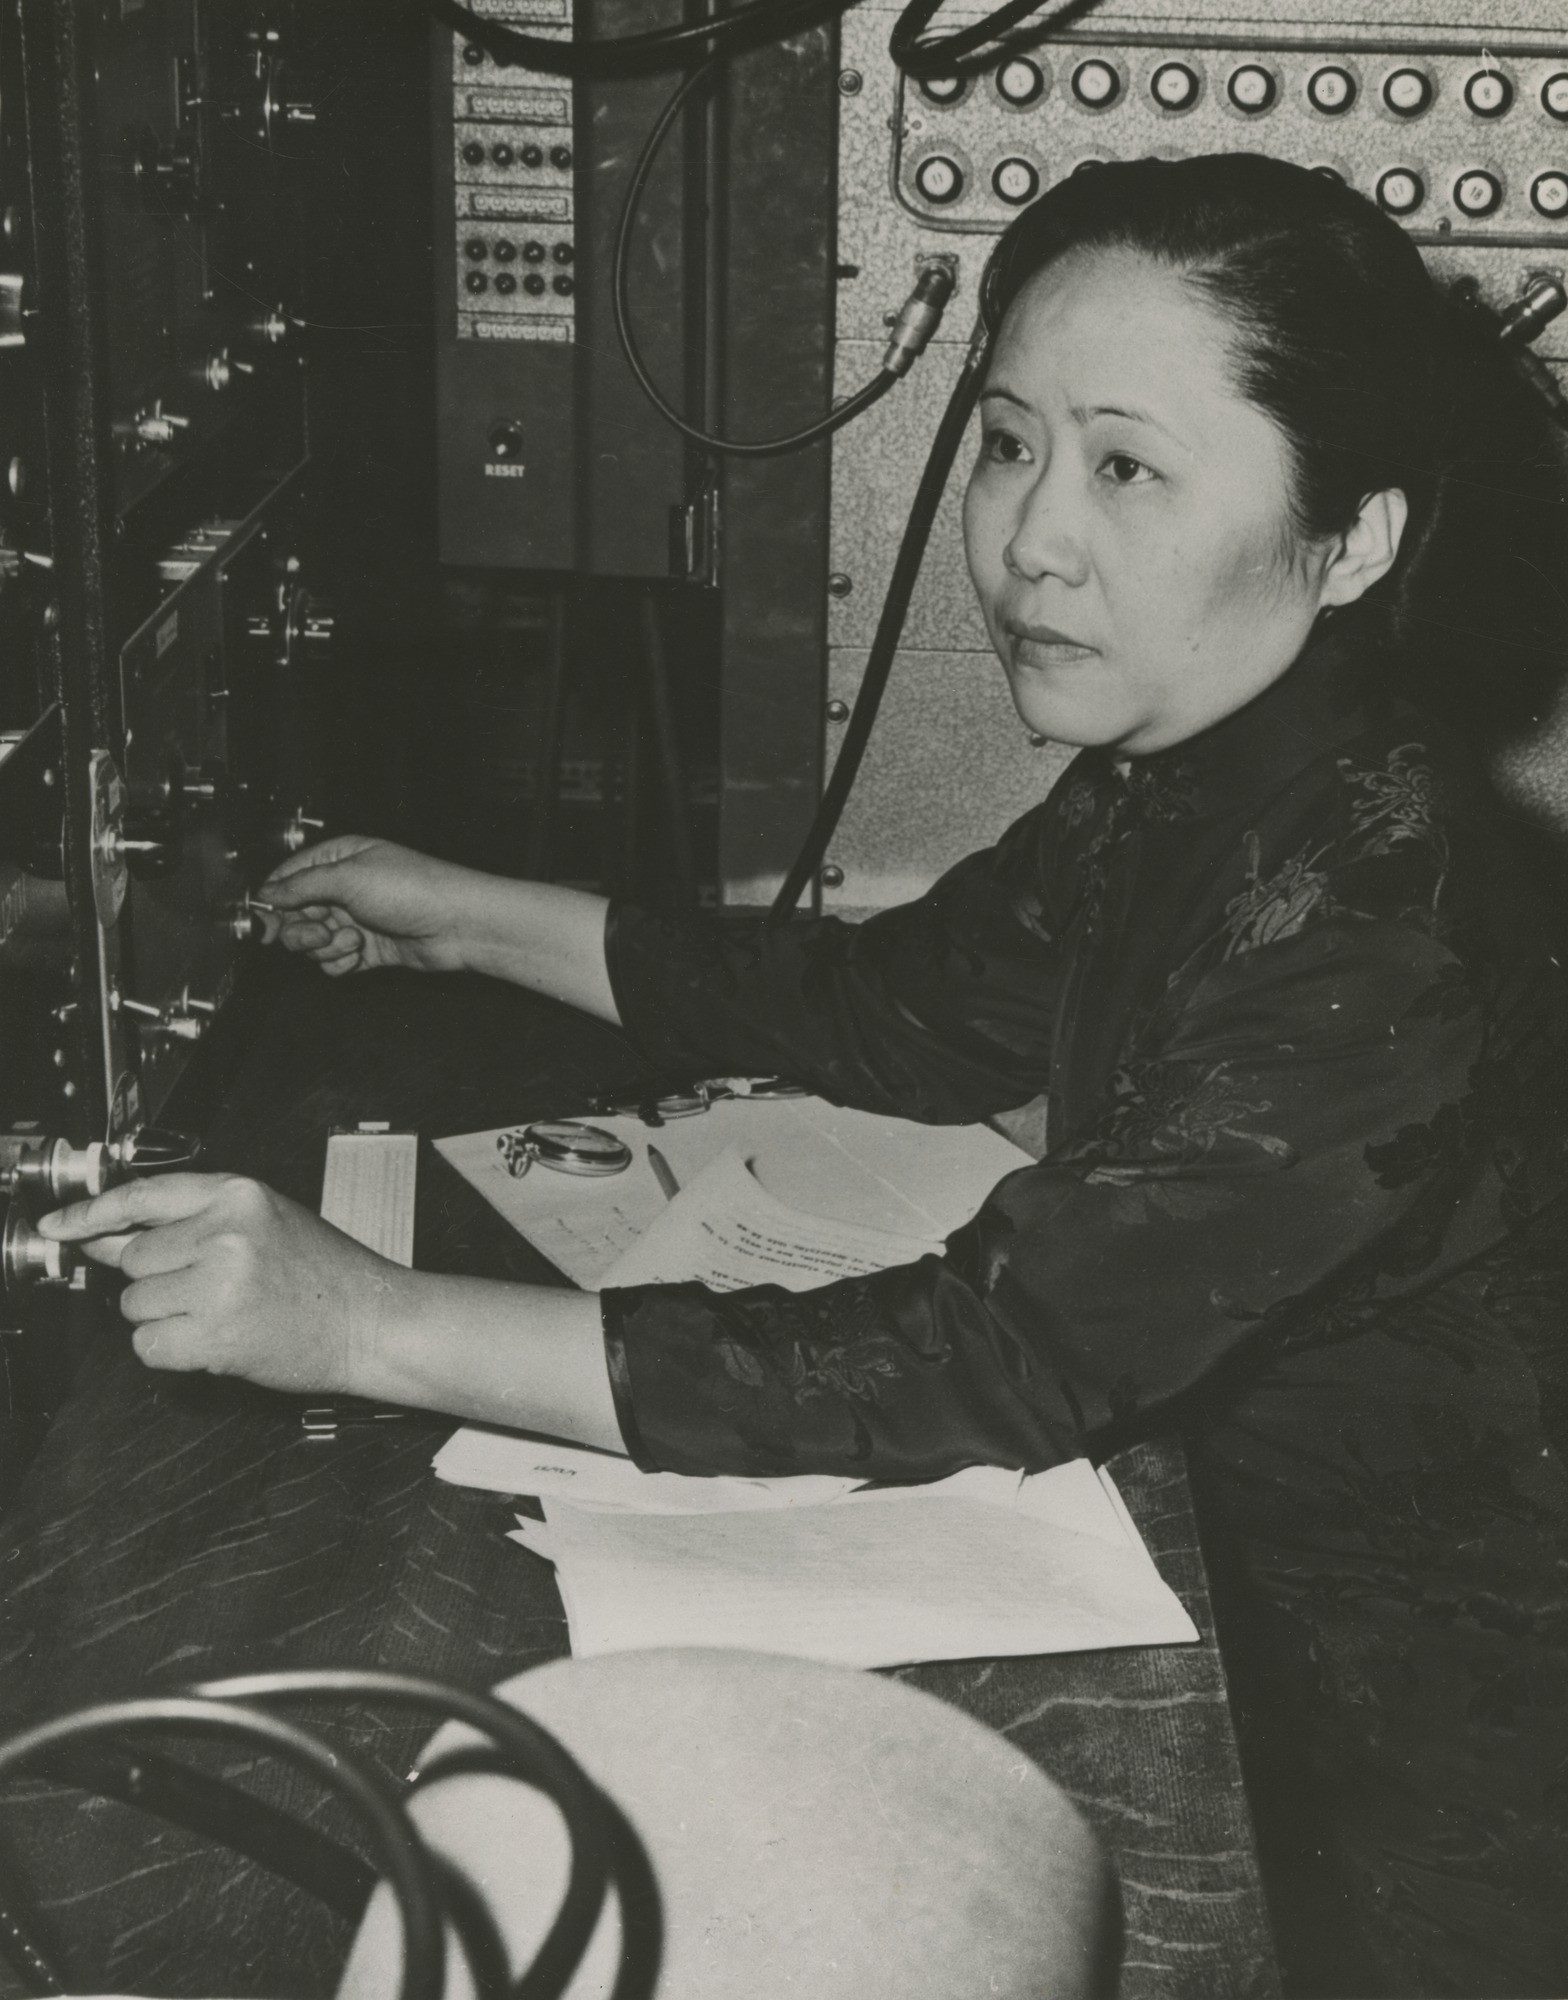 Chien-Shiung Wu (Foto: By Smithsonian Institution (Flickr: Chien-shiung Wu (1912-1997), via Wikimedia Commons)